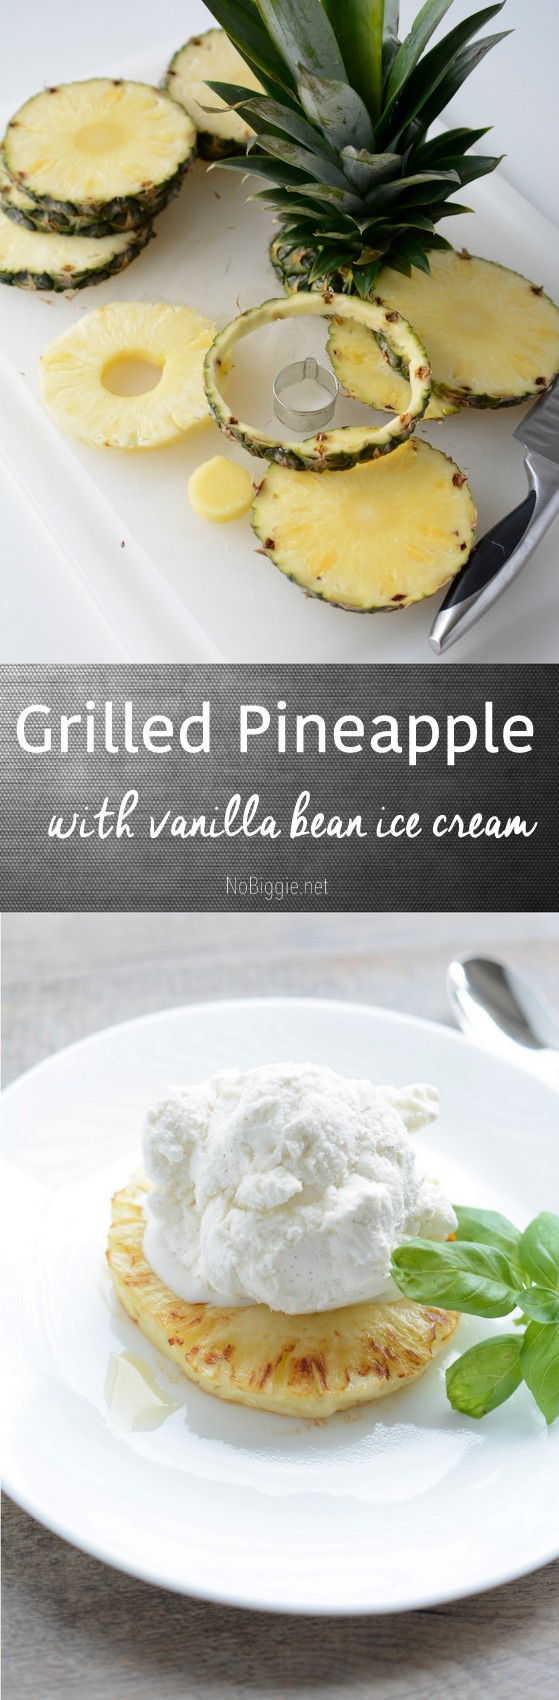 Grilled Pineapple with vanilla ice cream a delicious summer dessert that is just a match made in heaven ,  #pineapple #grilledpineapple #icecream #vanillaicecream #summerdesserts